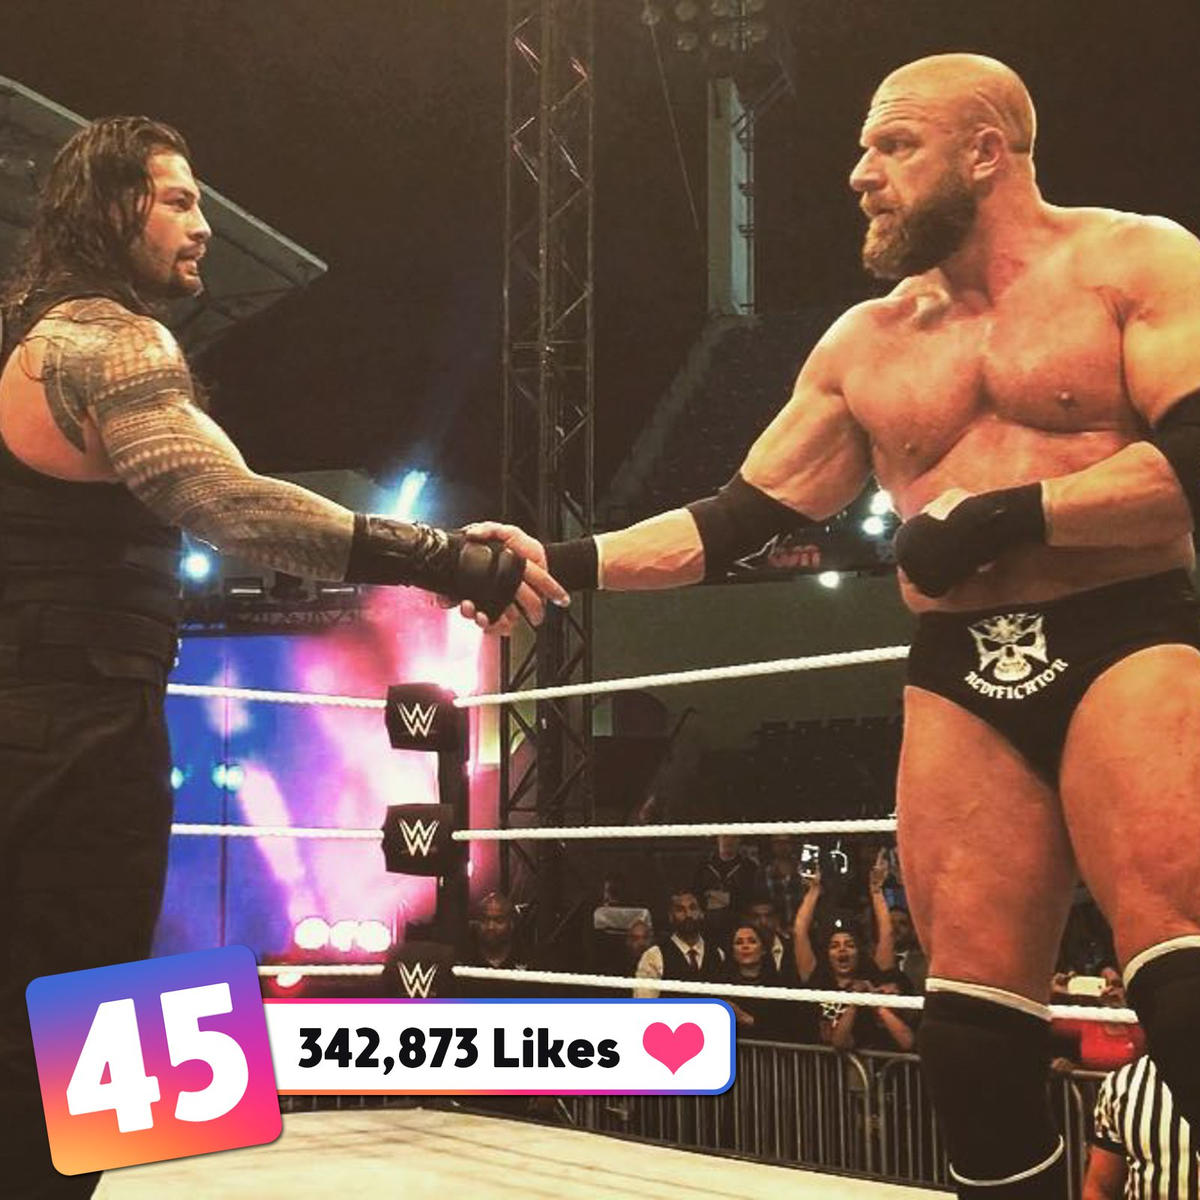 The 50 most liked WWE Instagram posts ever!: photos | WWE